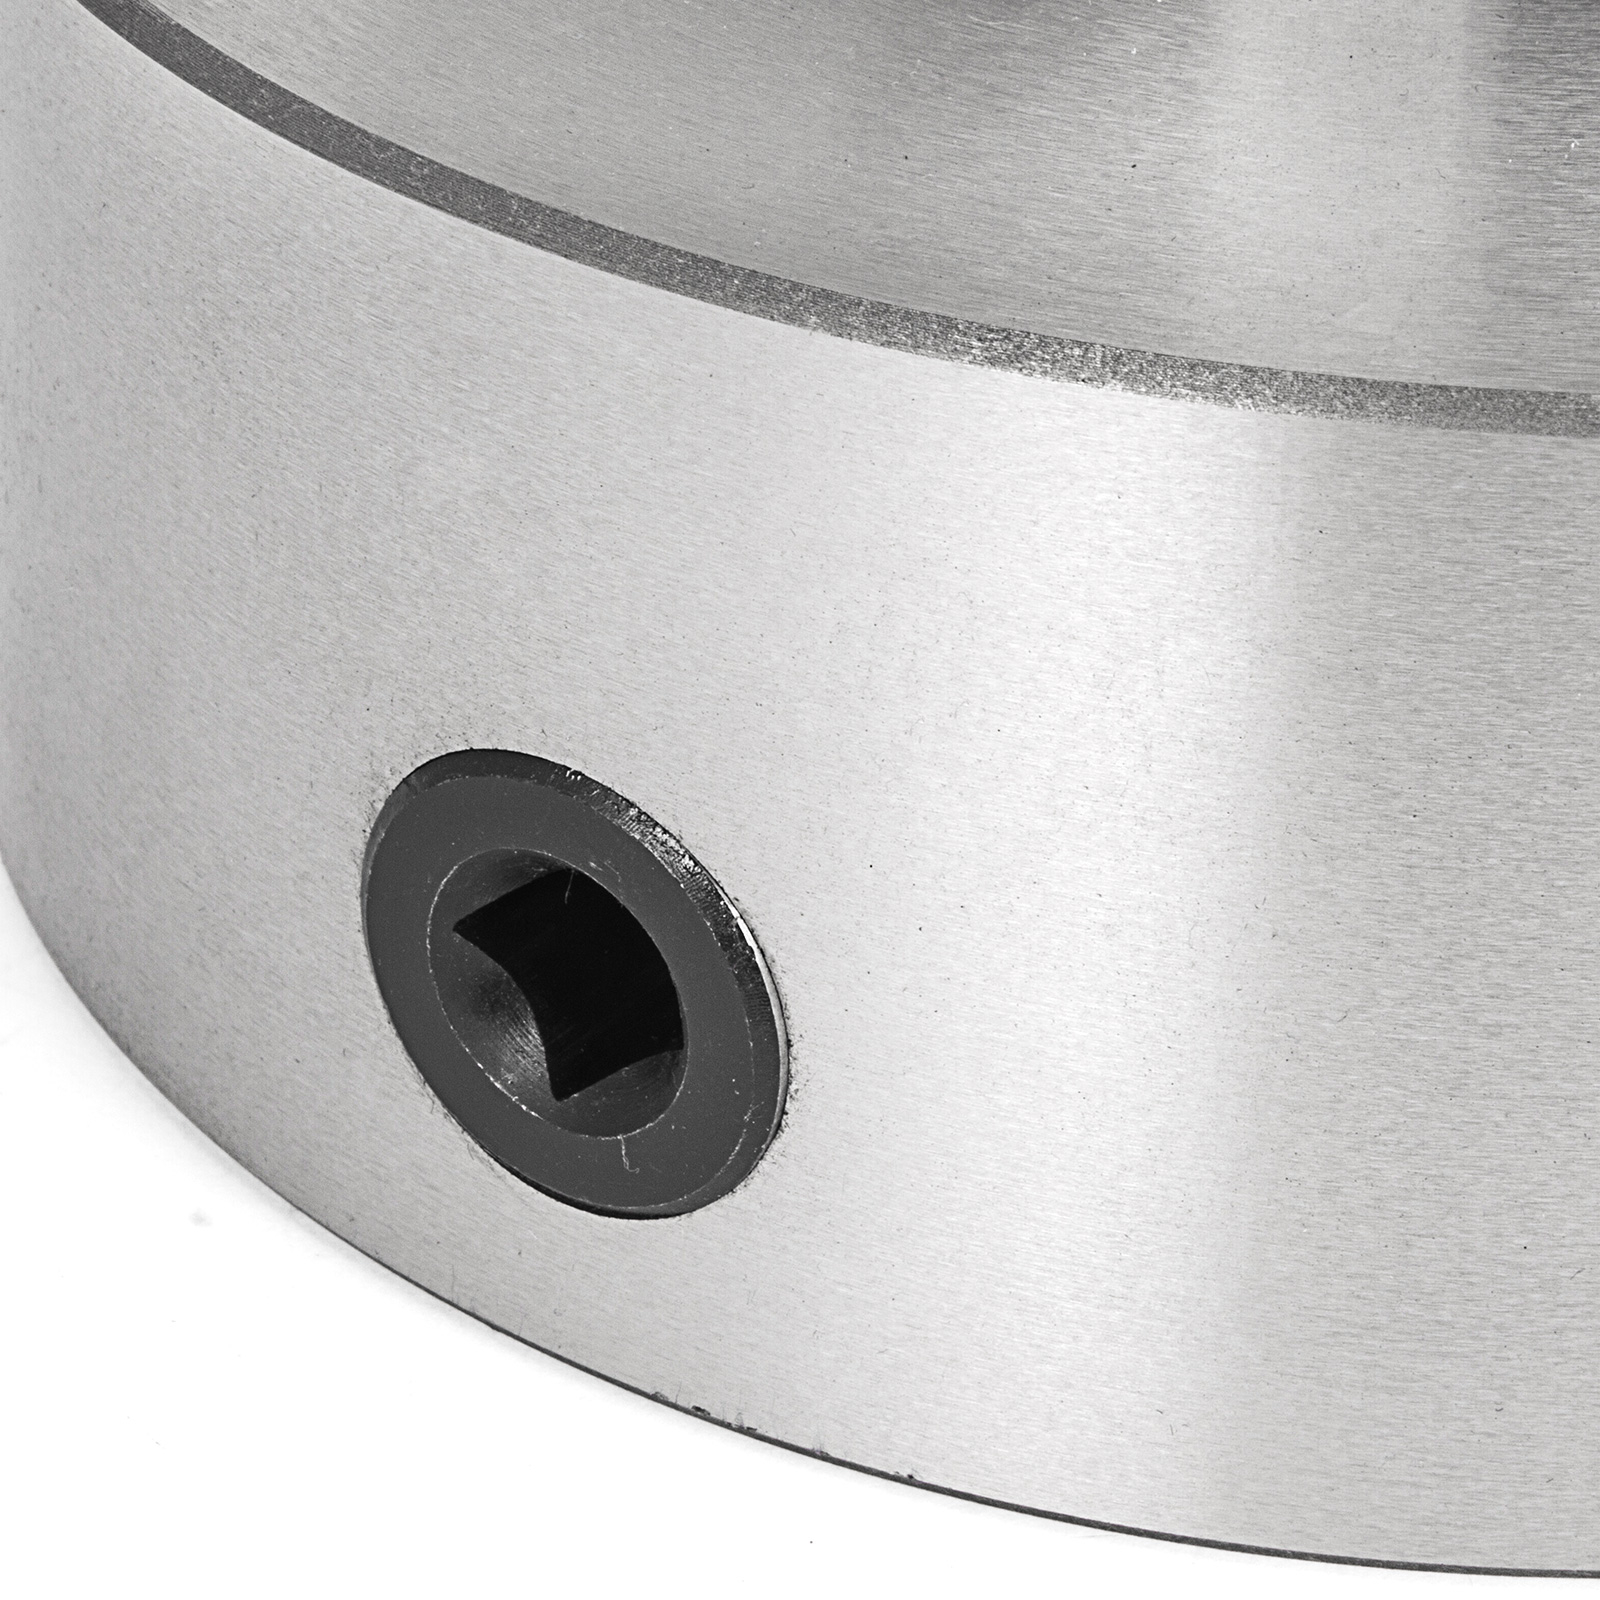 160-400mm-3-Jaw-Metal-Lathe-Chuck-Reversible-Independent-Key-Handle thumbnail 43